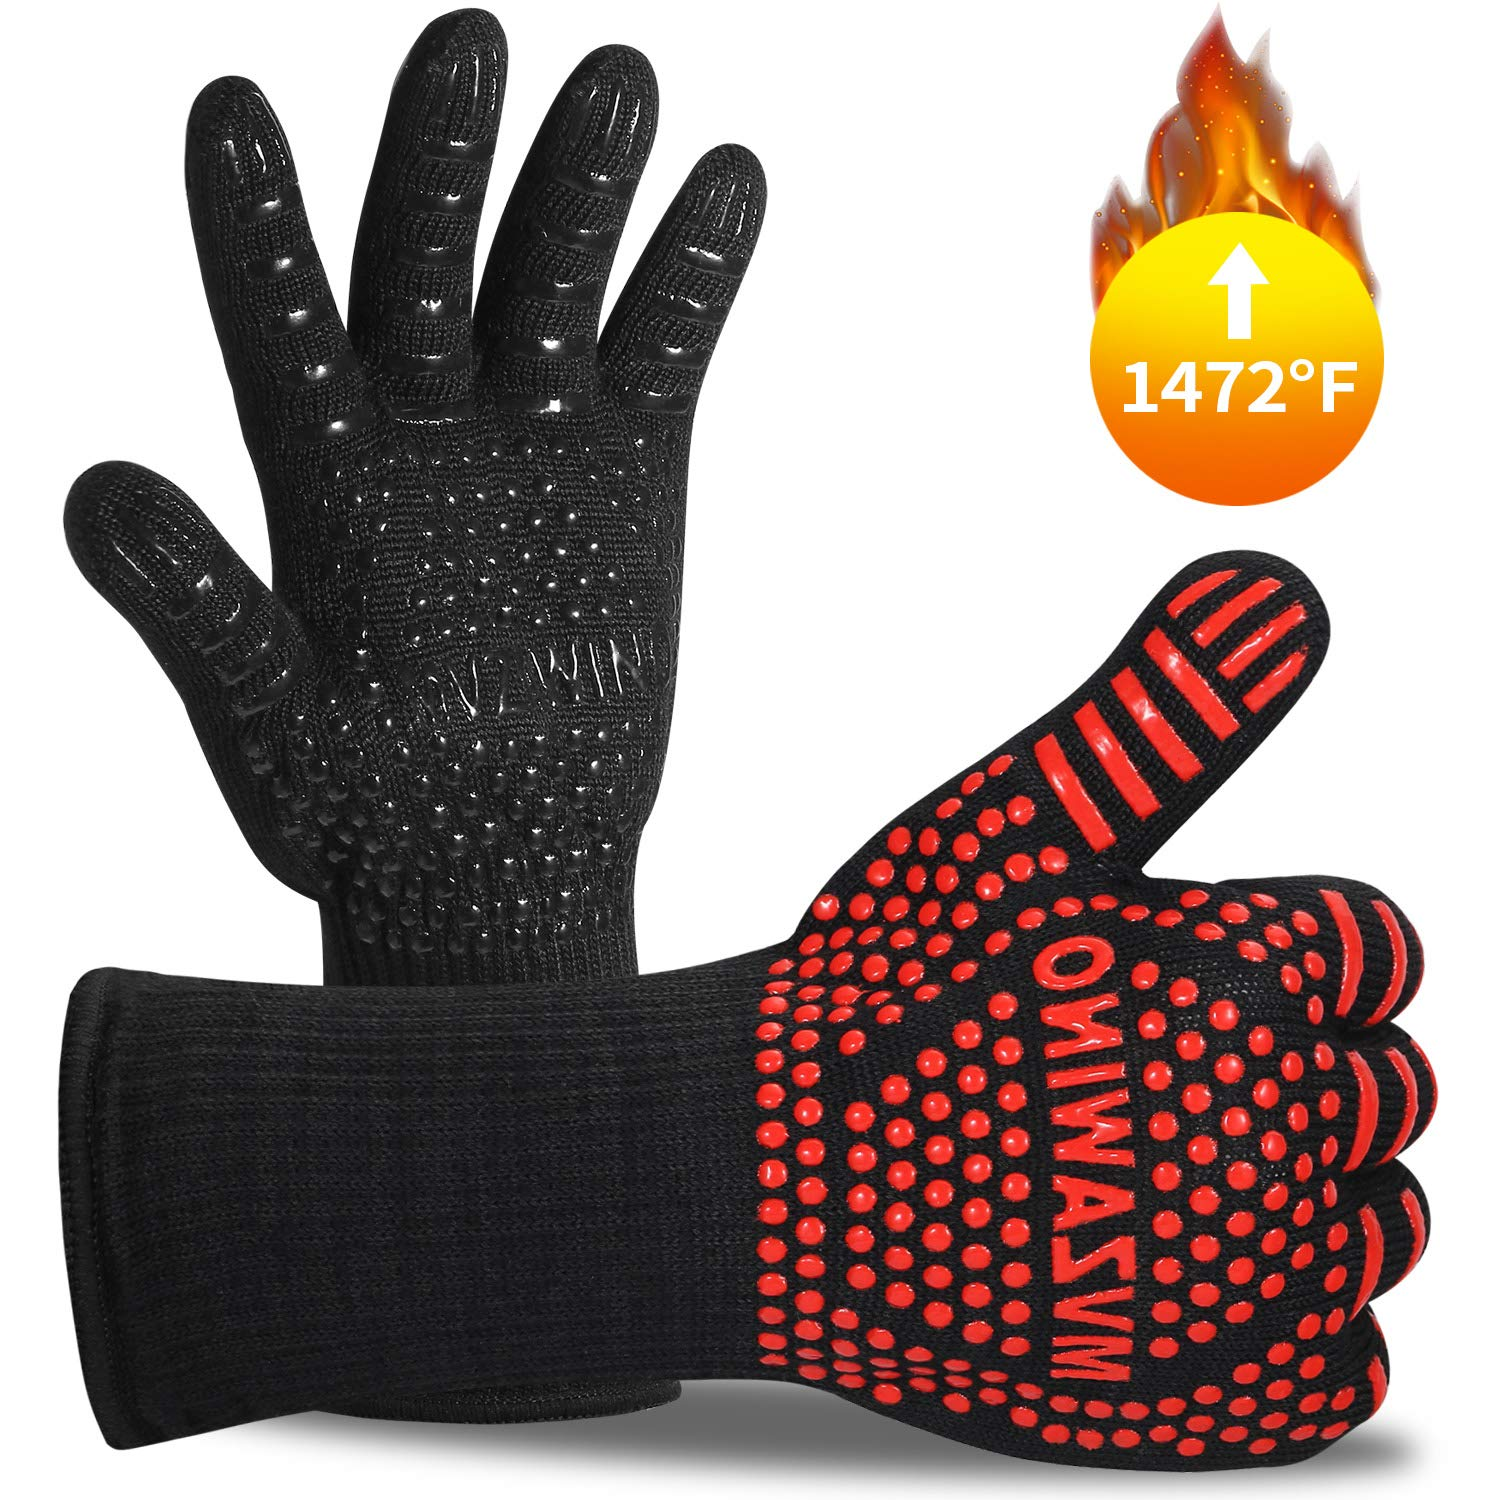 Premium BBQ Gloves, 1472°F Extreme Heat Oven Gloves, Grilling Gloves with Cut Resistant, Durable Fireproof Kitchen Oven Mitts Designed For Cooking, Grilling, Frying, Baking, Barbecue (1 pair)